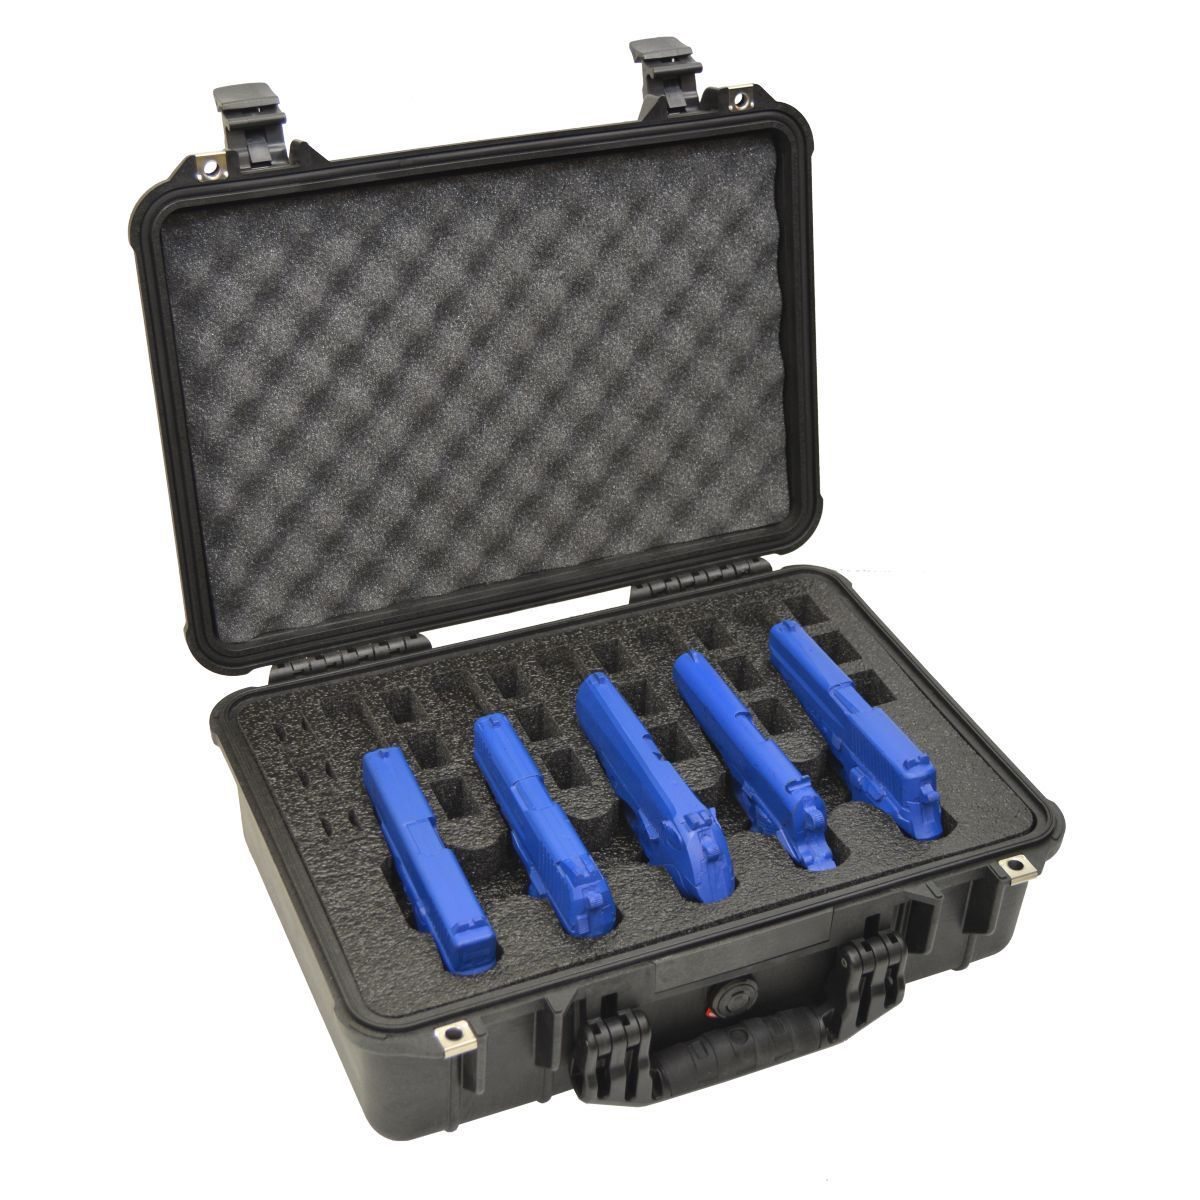 Arms Guard 5 Pistol Heavy Duty Pelican 1500 Case